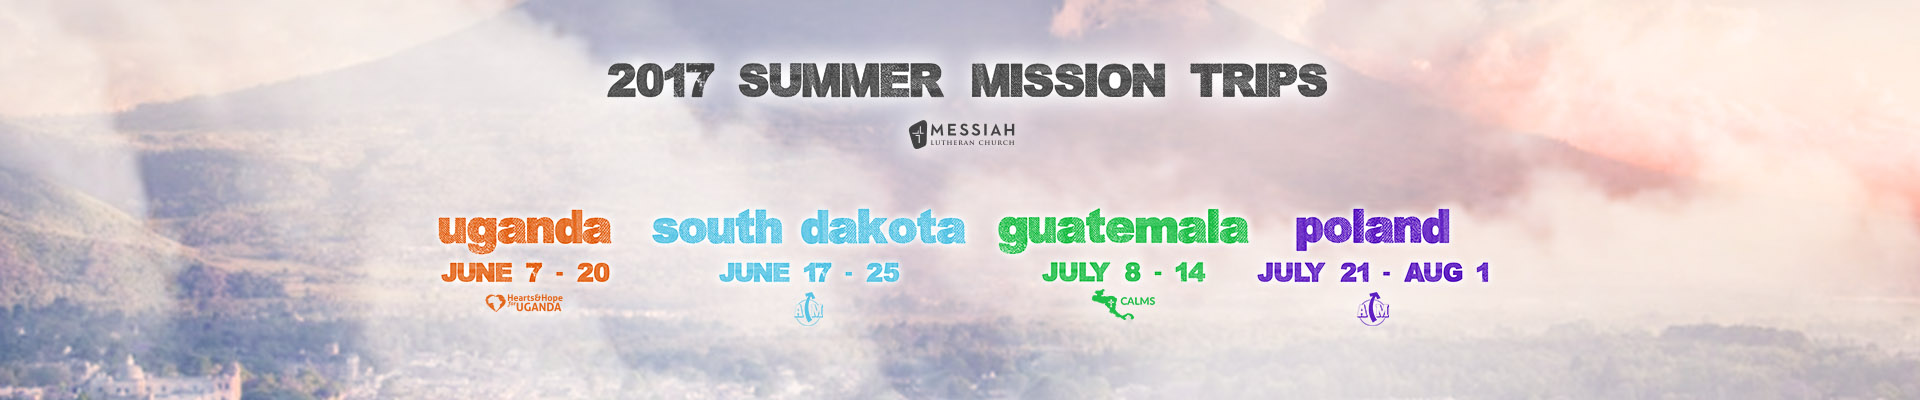 summer mission trips 2017 layerslider